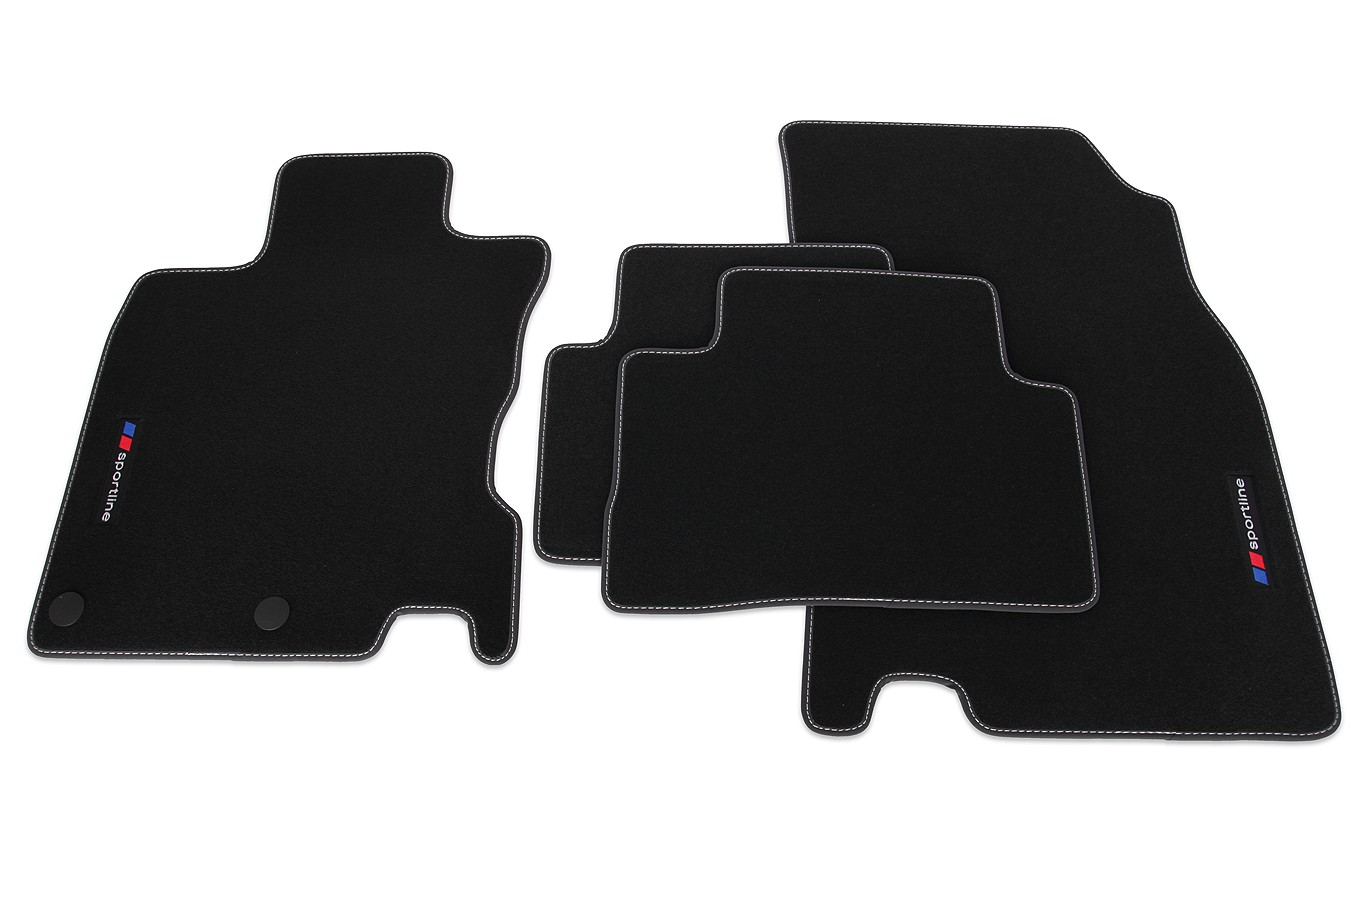 sportline tapis de sol pour nissan qashqai 2 ii j11 ann e 2013 tapis de voiture pour nissan. Black Bedroom Furniture Sets. Home Design Ideas